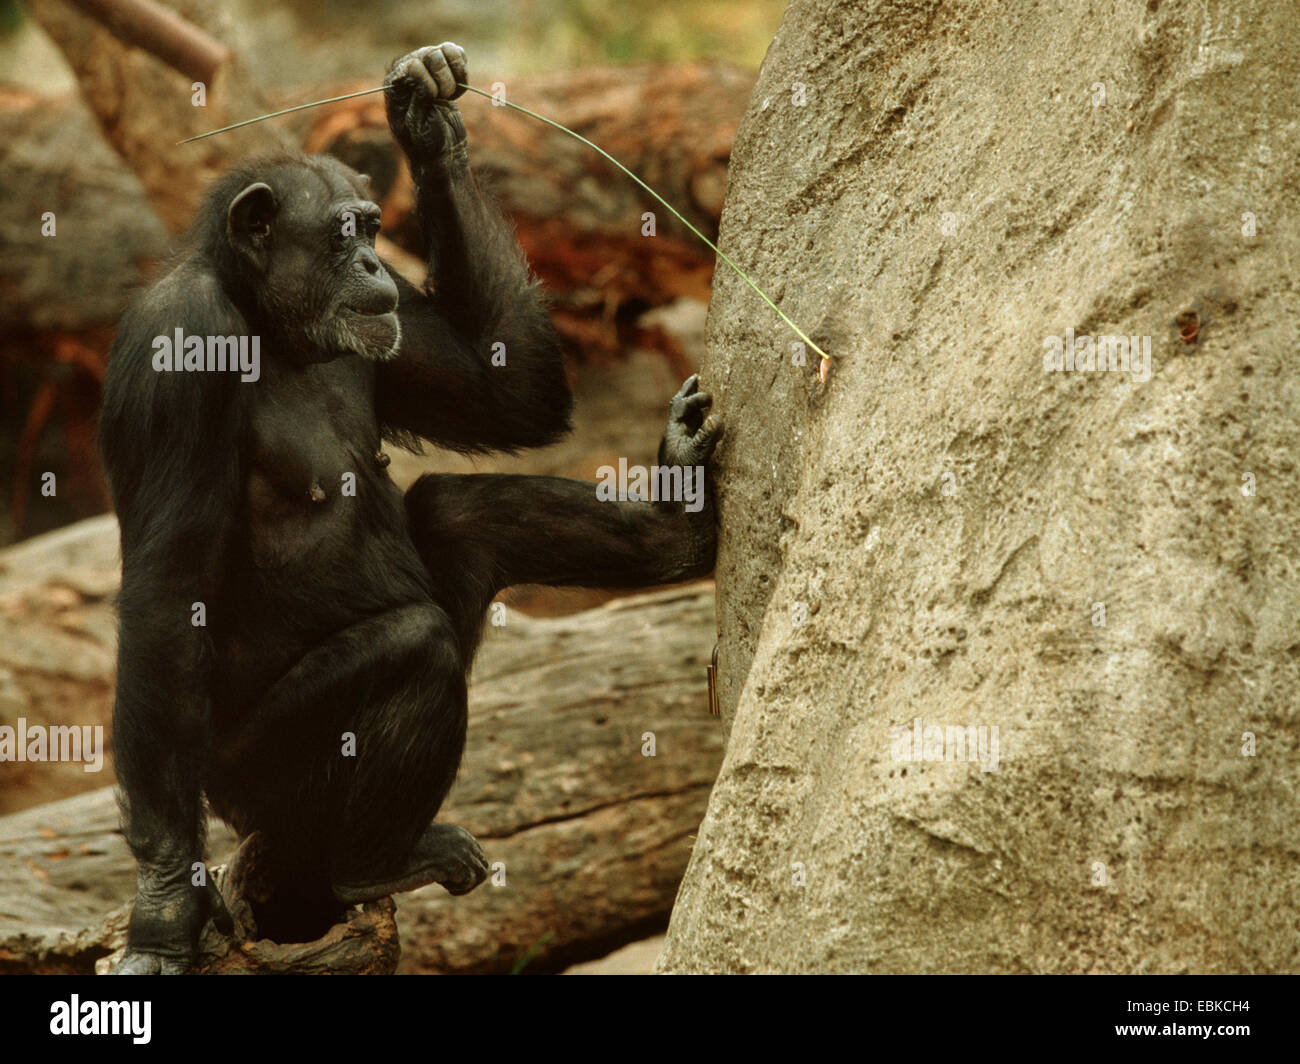 common chimpanzee (Pan troglodytes), Tool use by a chimpanzee, animal with wire at a artifical termite hill - Stock Image